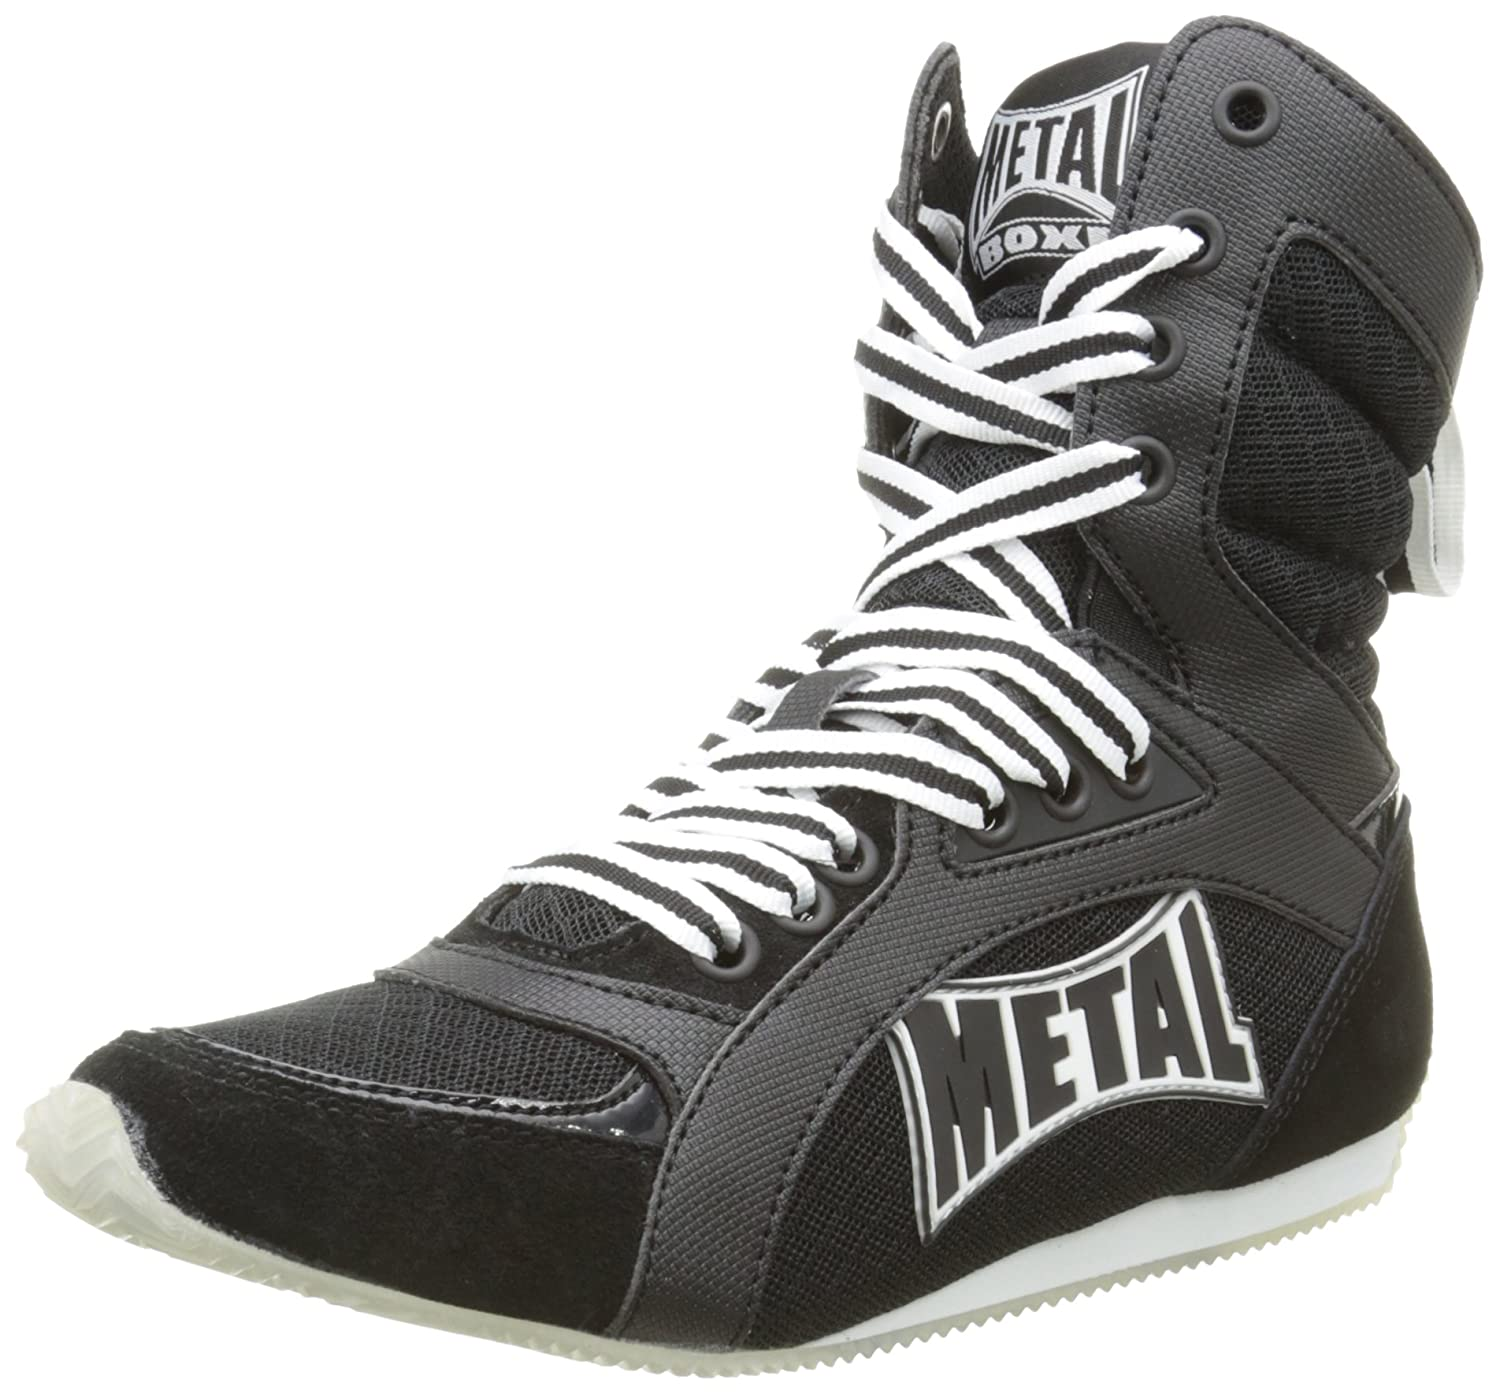 Amazon.com: METAL BOXE Viper2 Shoes, Mens, Viper2, black, Taille 44: Sports & Outdoors